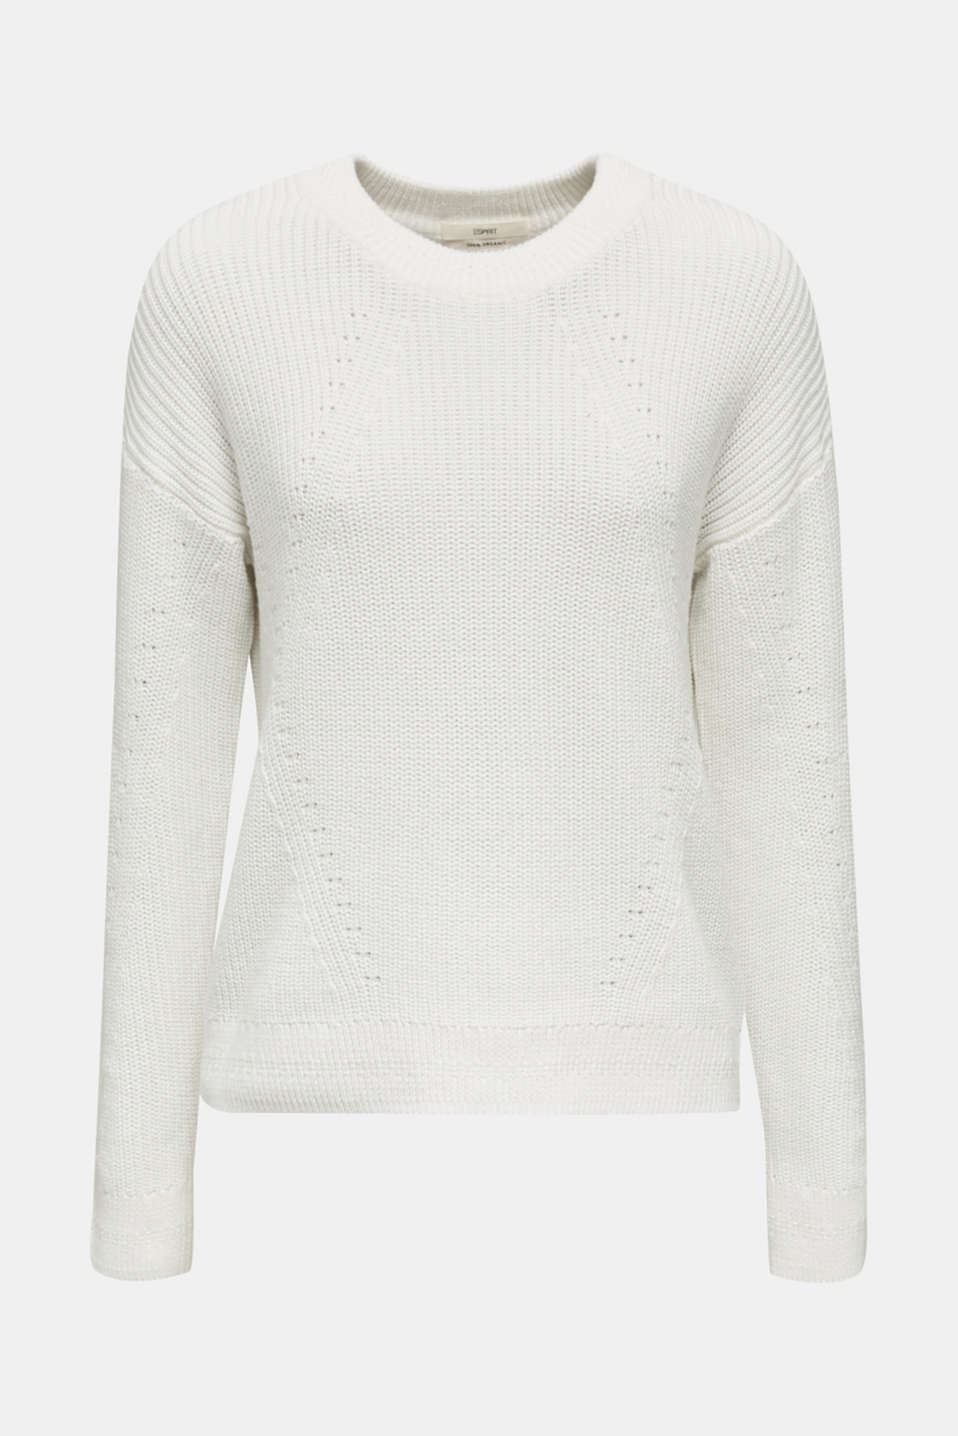 Jumper with textured details, 100% cotton, OFF WHITE, detail image number 7